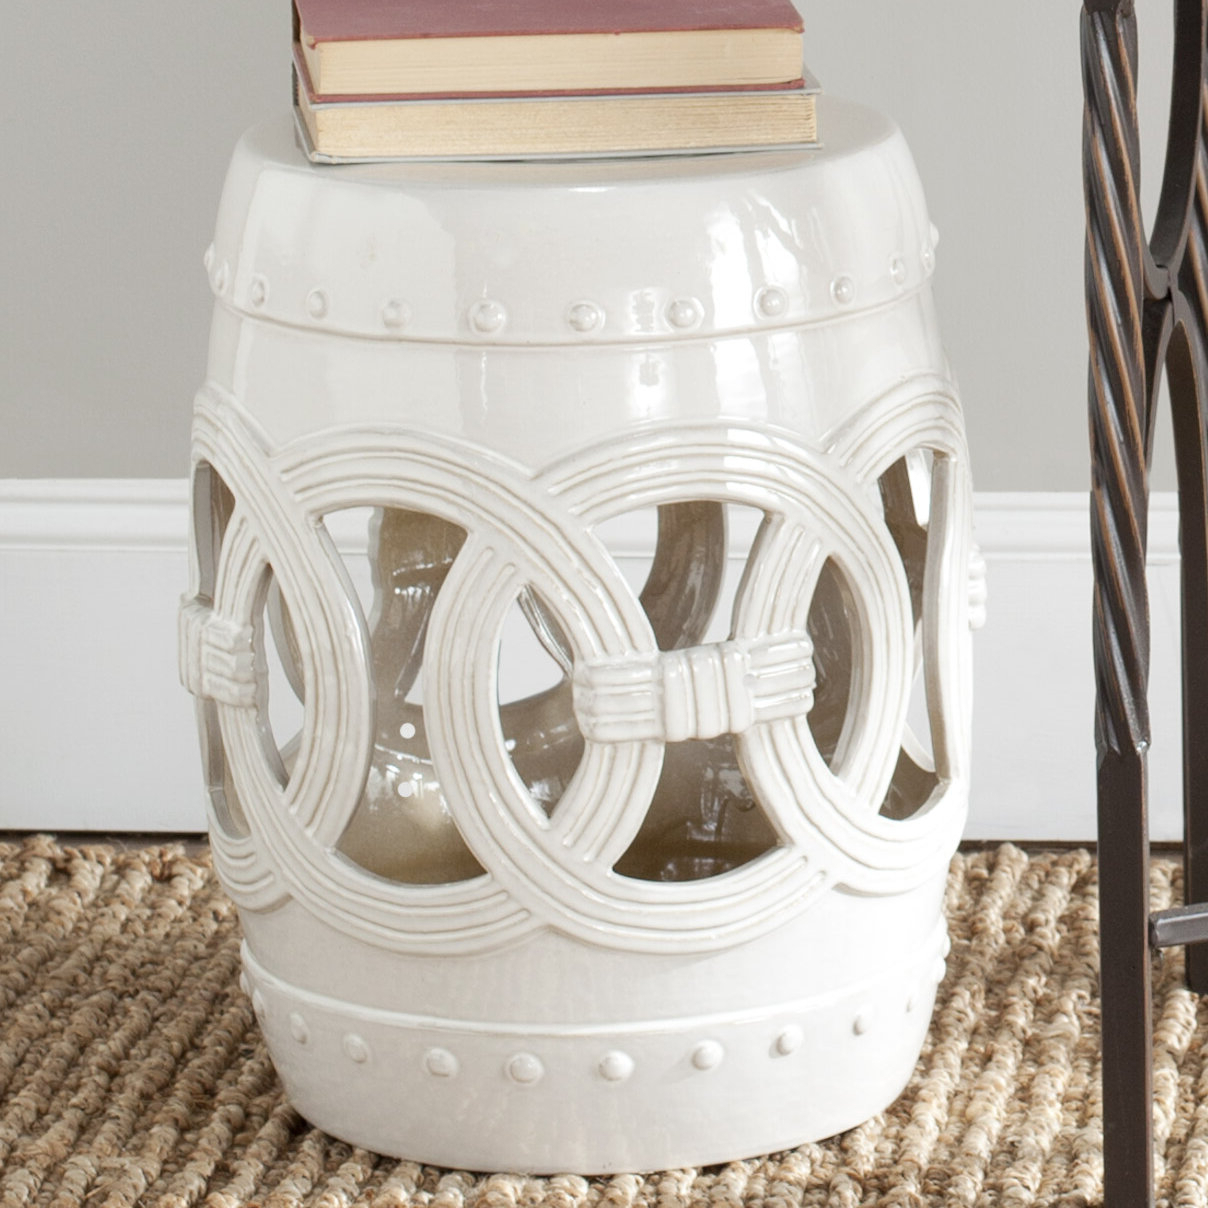 Wayfair For Well Known Middlet Owl Ceramic Garden Stools (View 13 of 30)